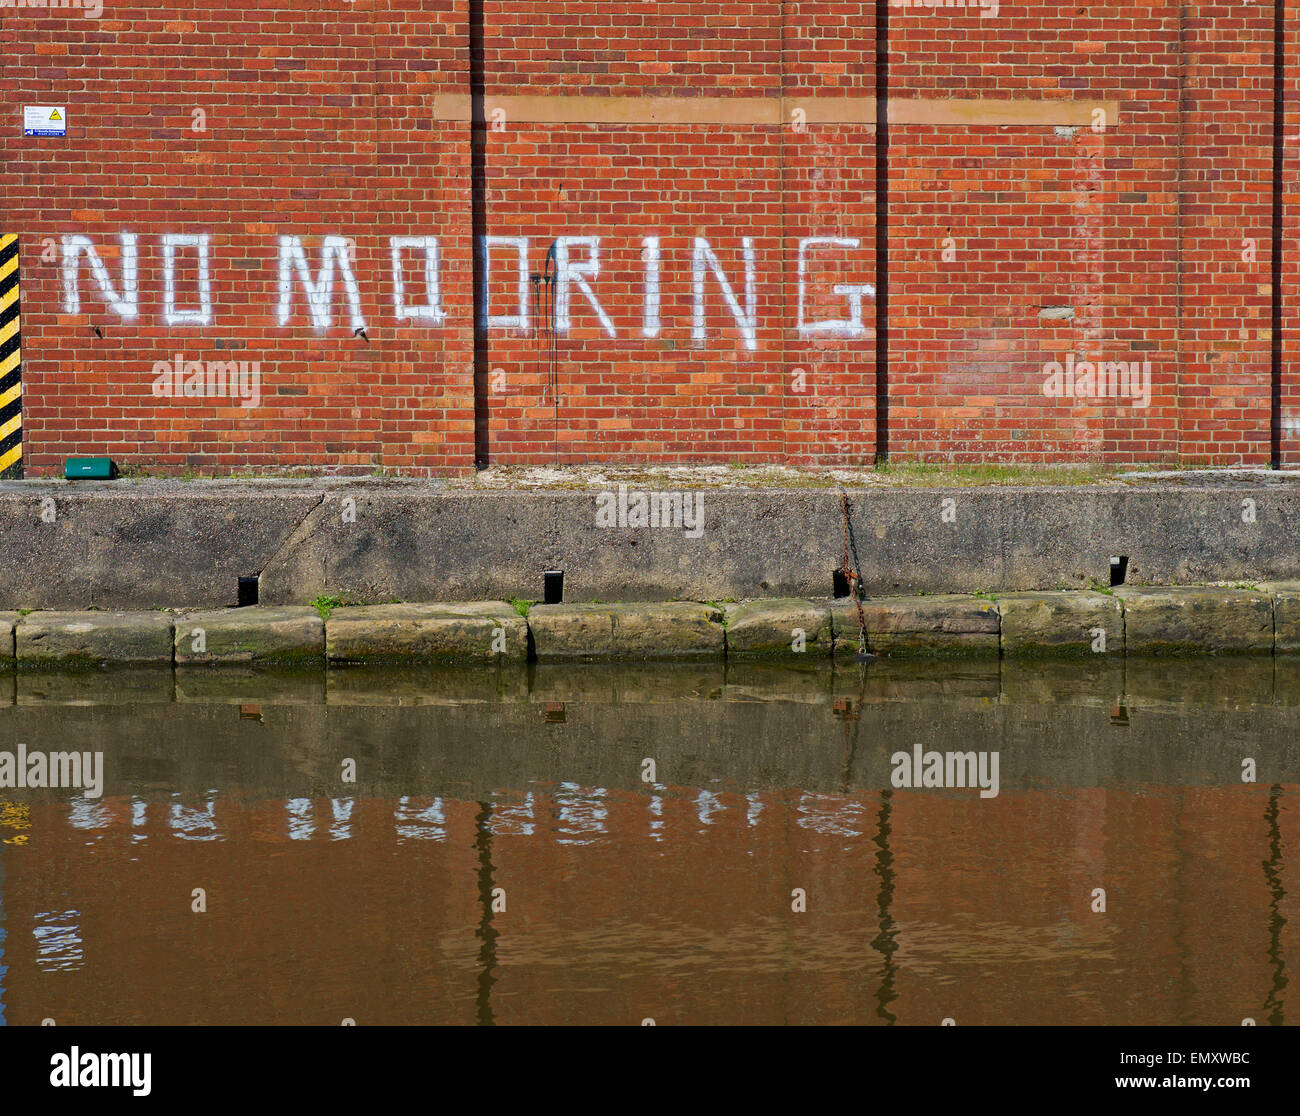 Sign - no mooring - on brick building next to canal, England UK - Stock Image